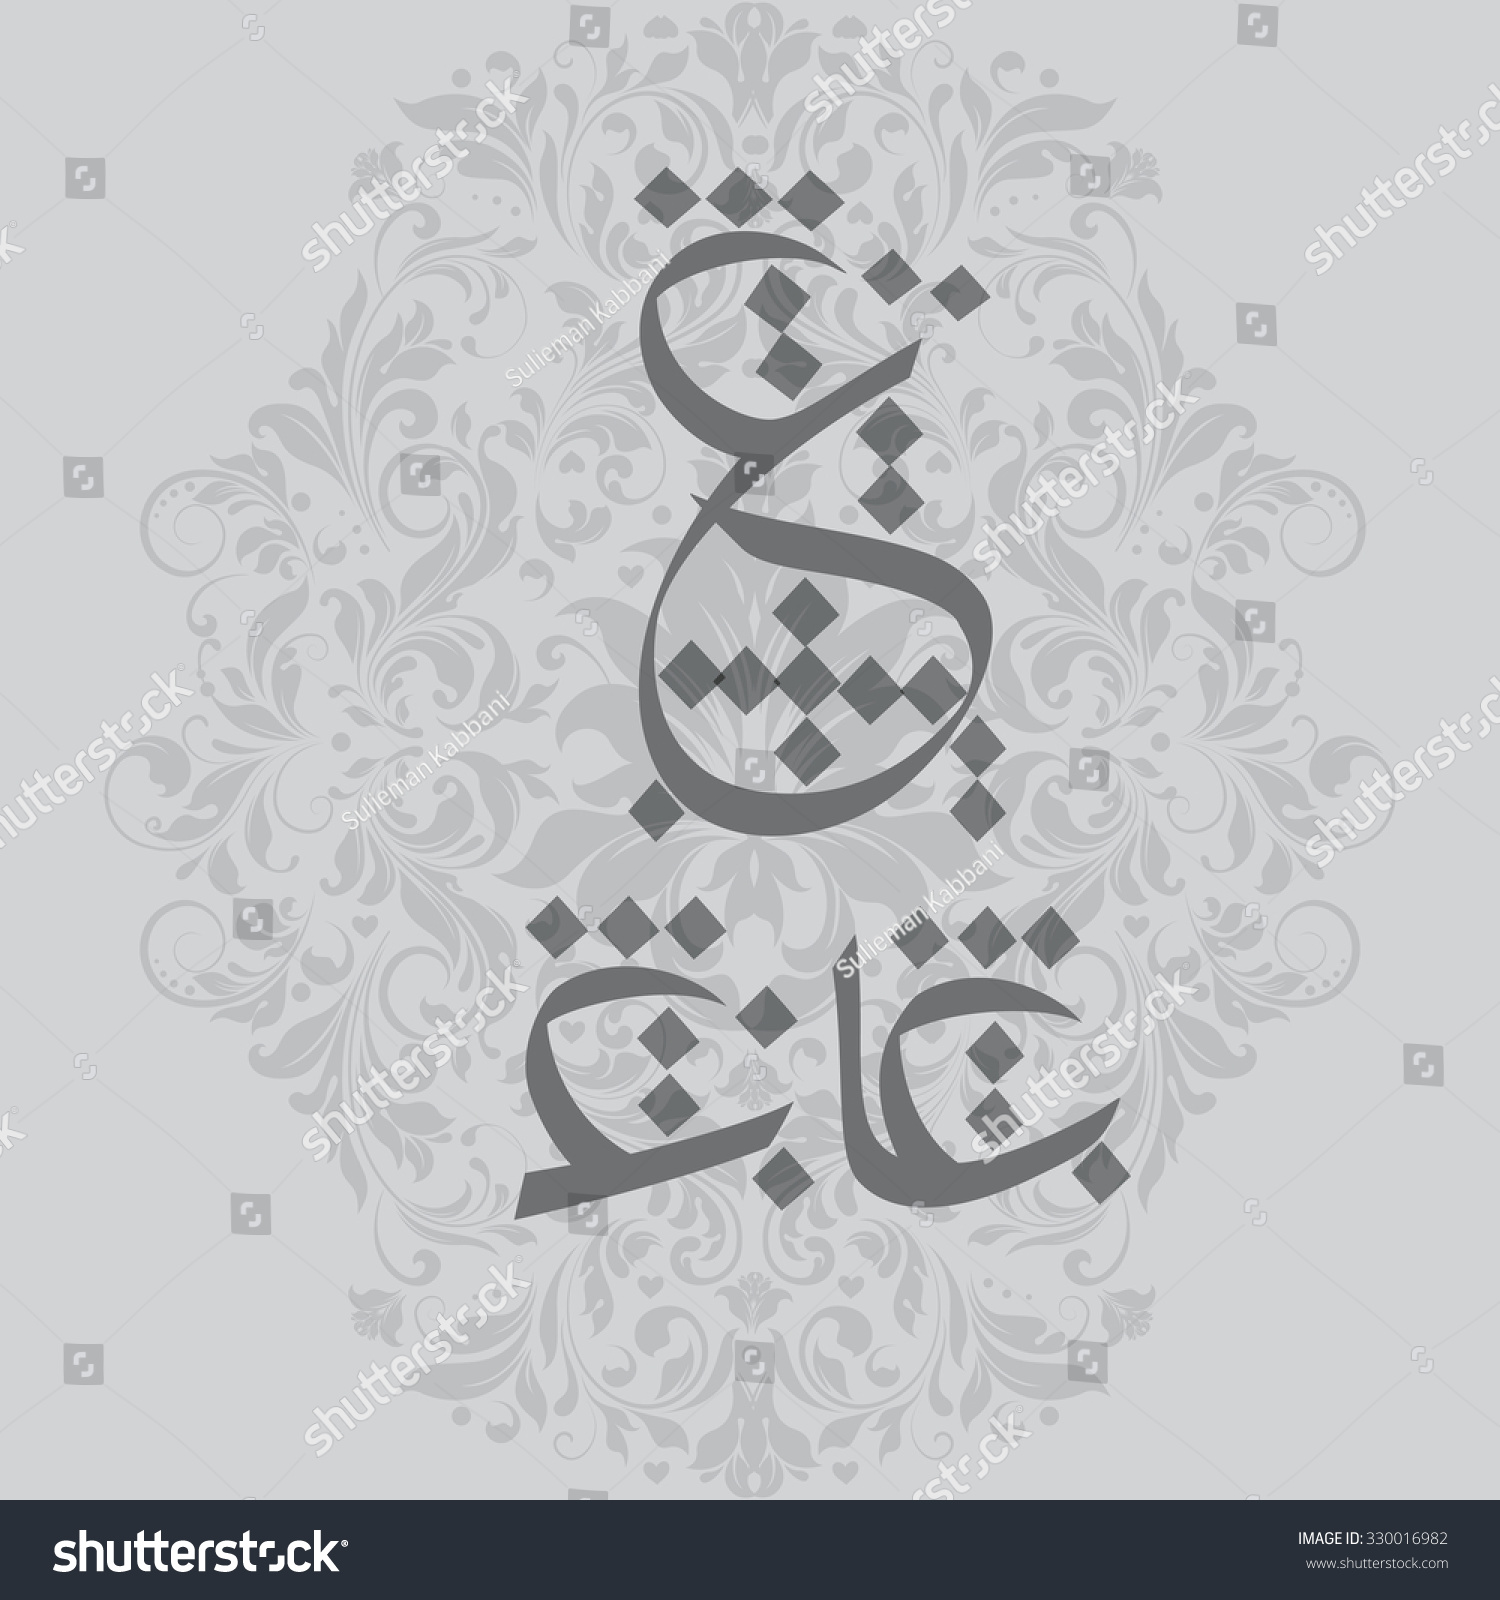 ... calligraphy, based upon the Arabic language, Arabic Calligraphy Letter